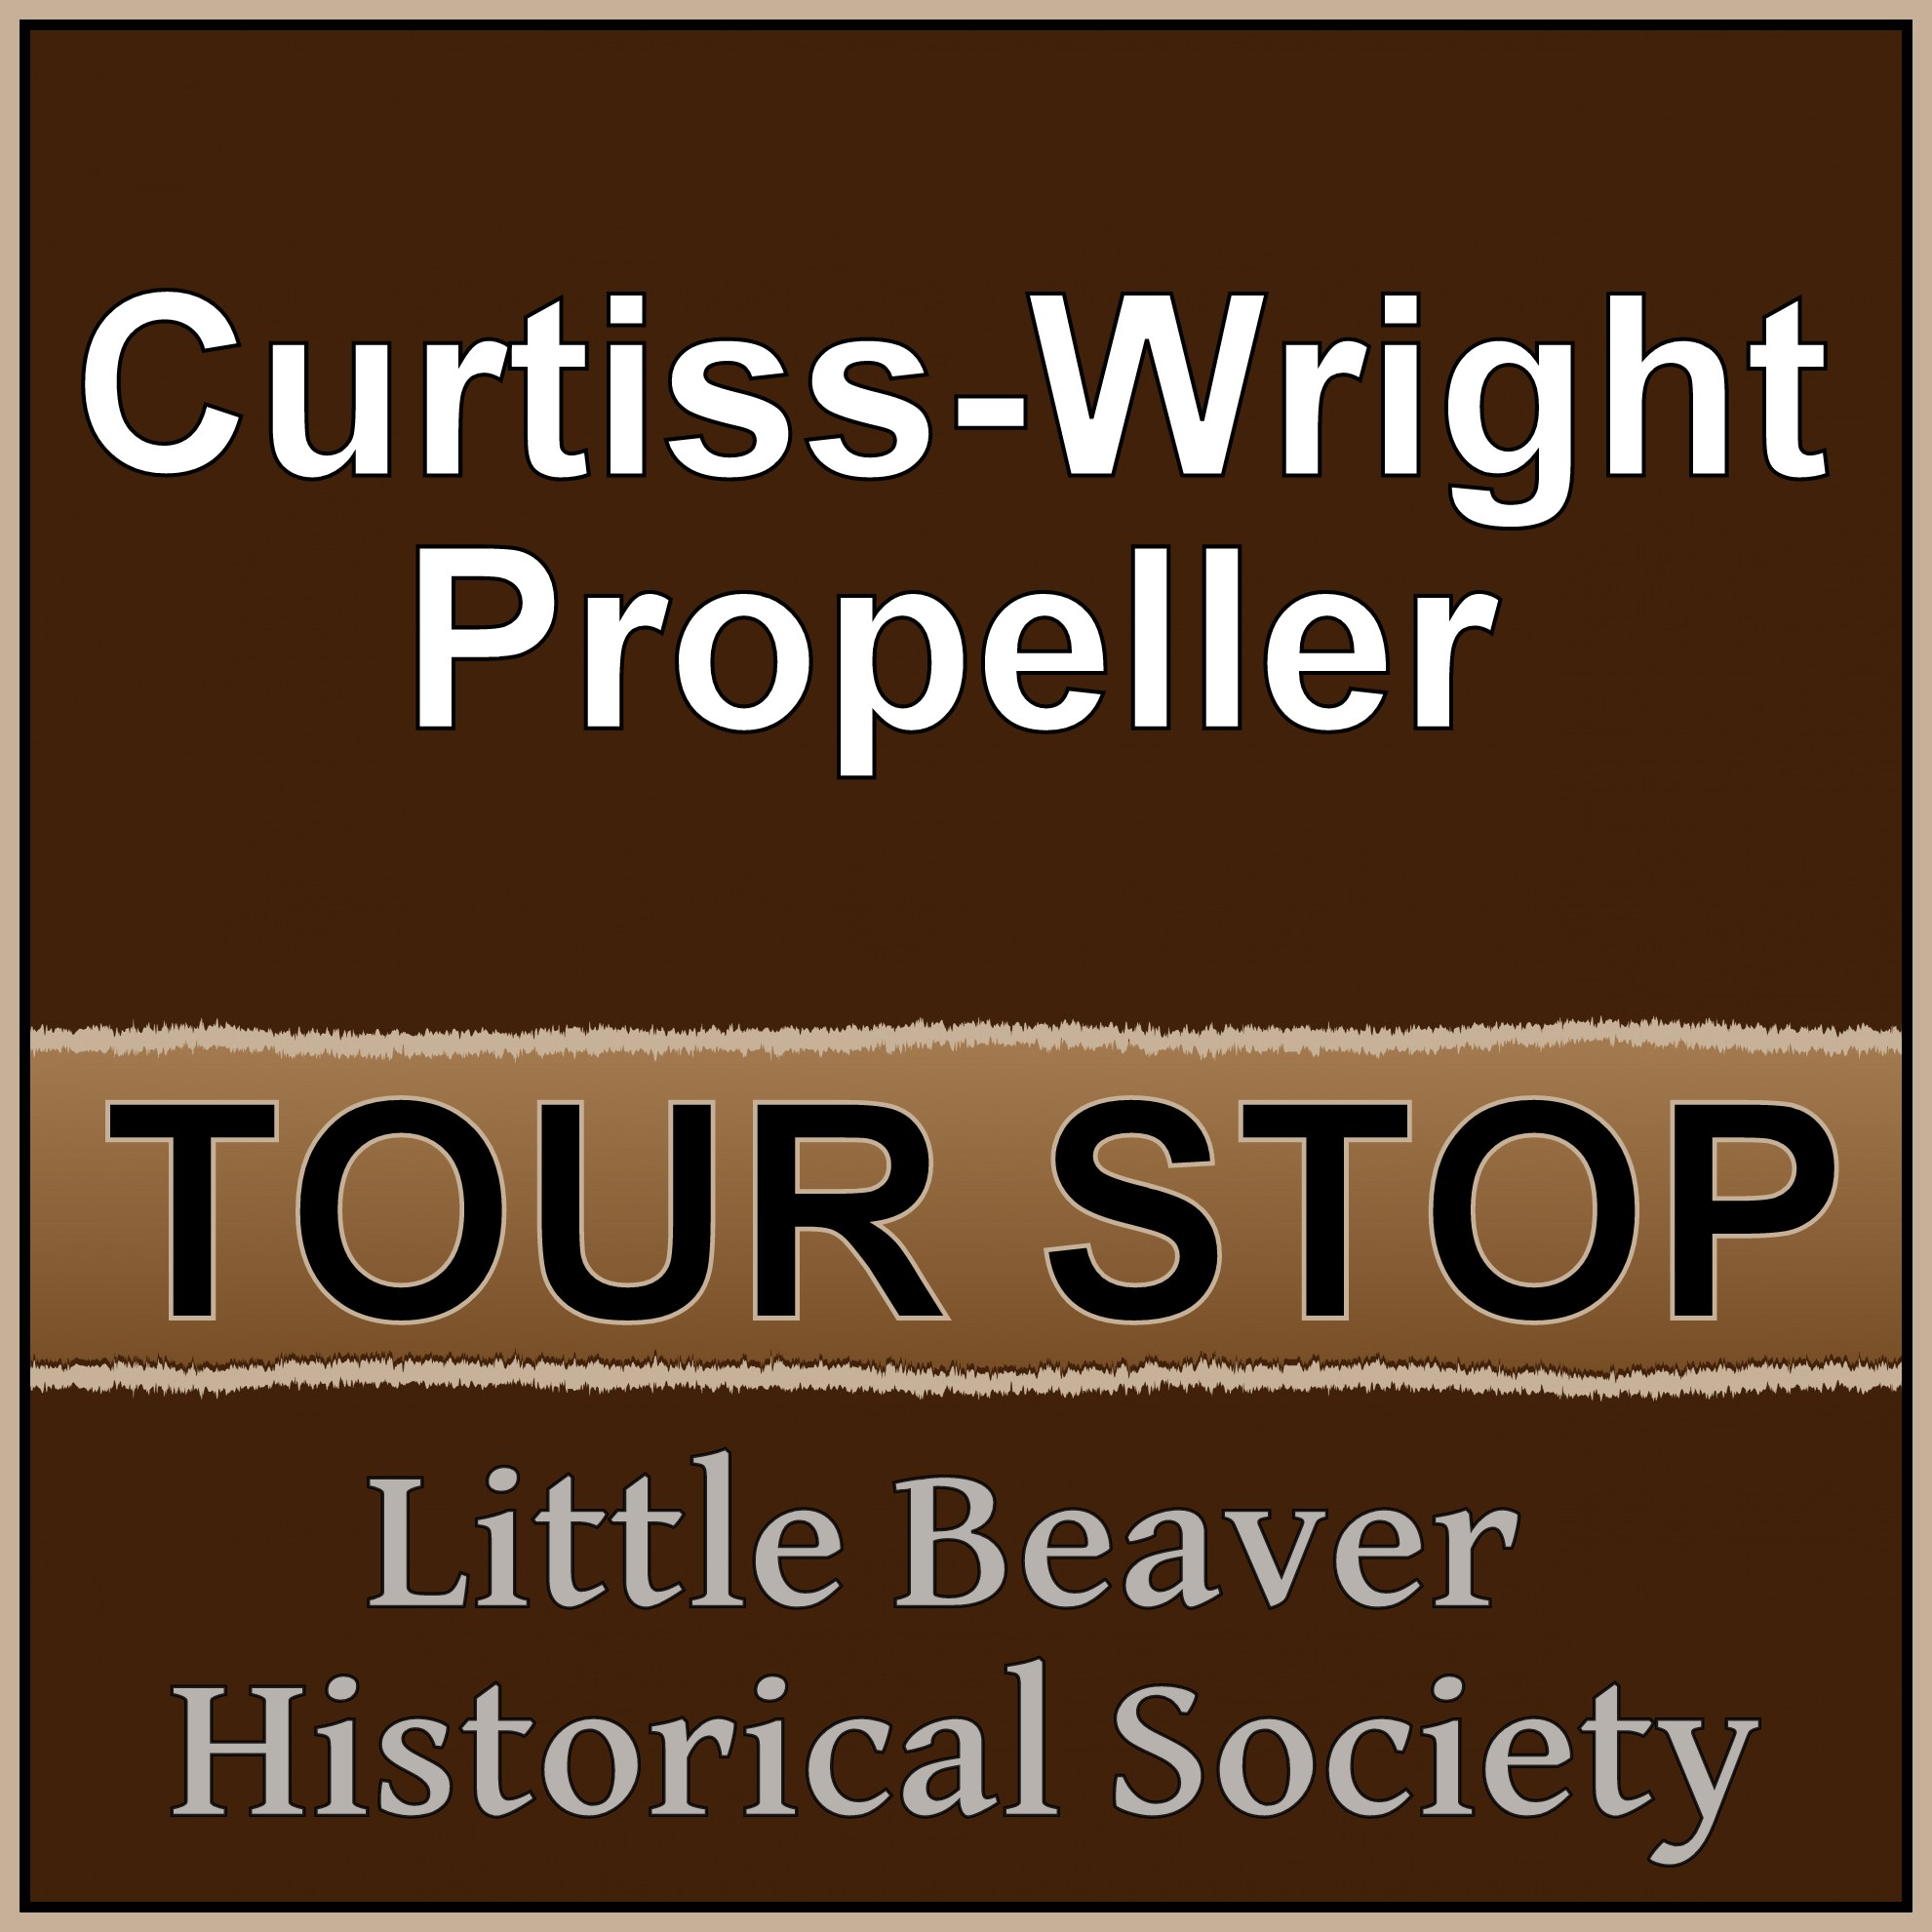 LBHS Tour Stop: Curtiss Wright Propeller